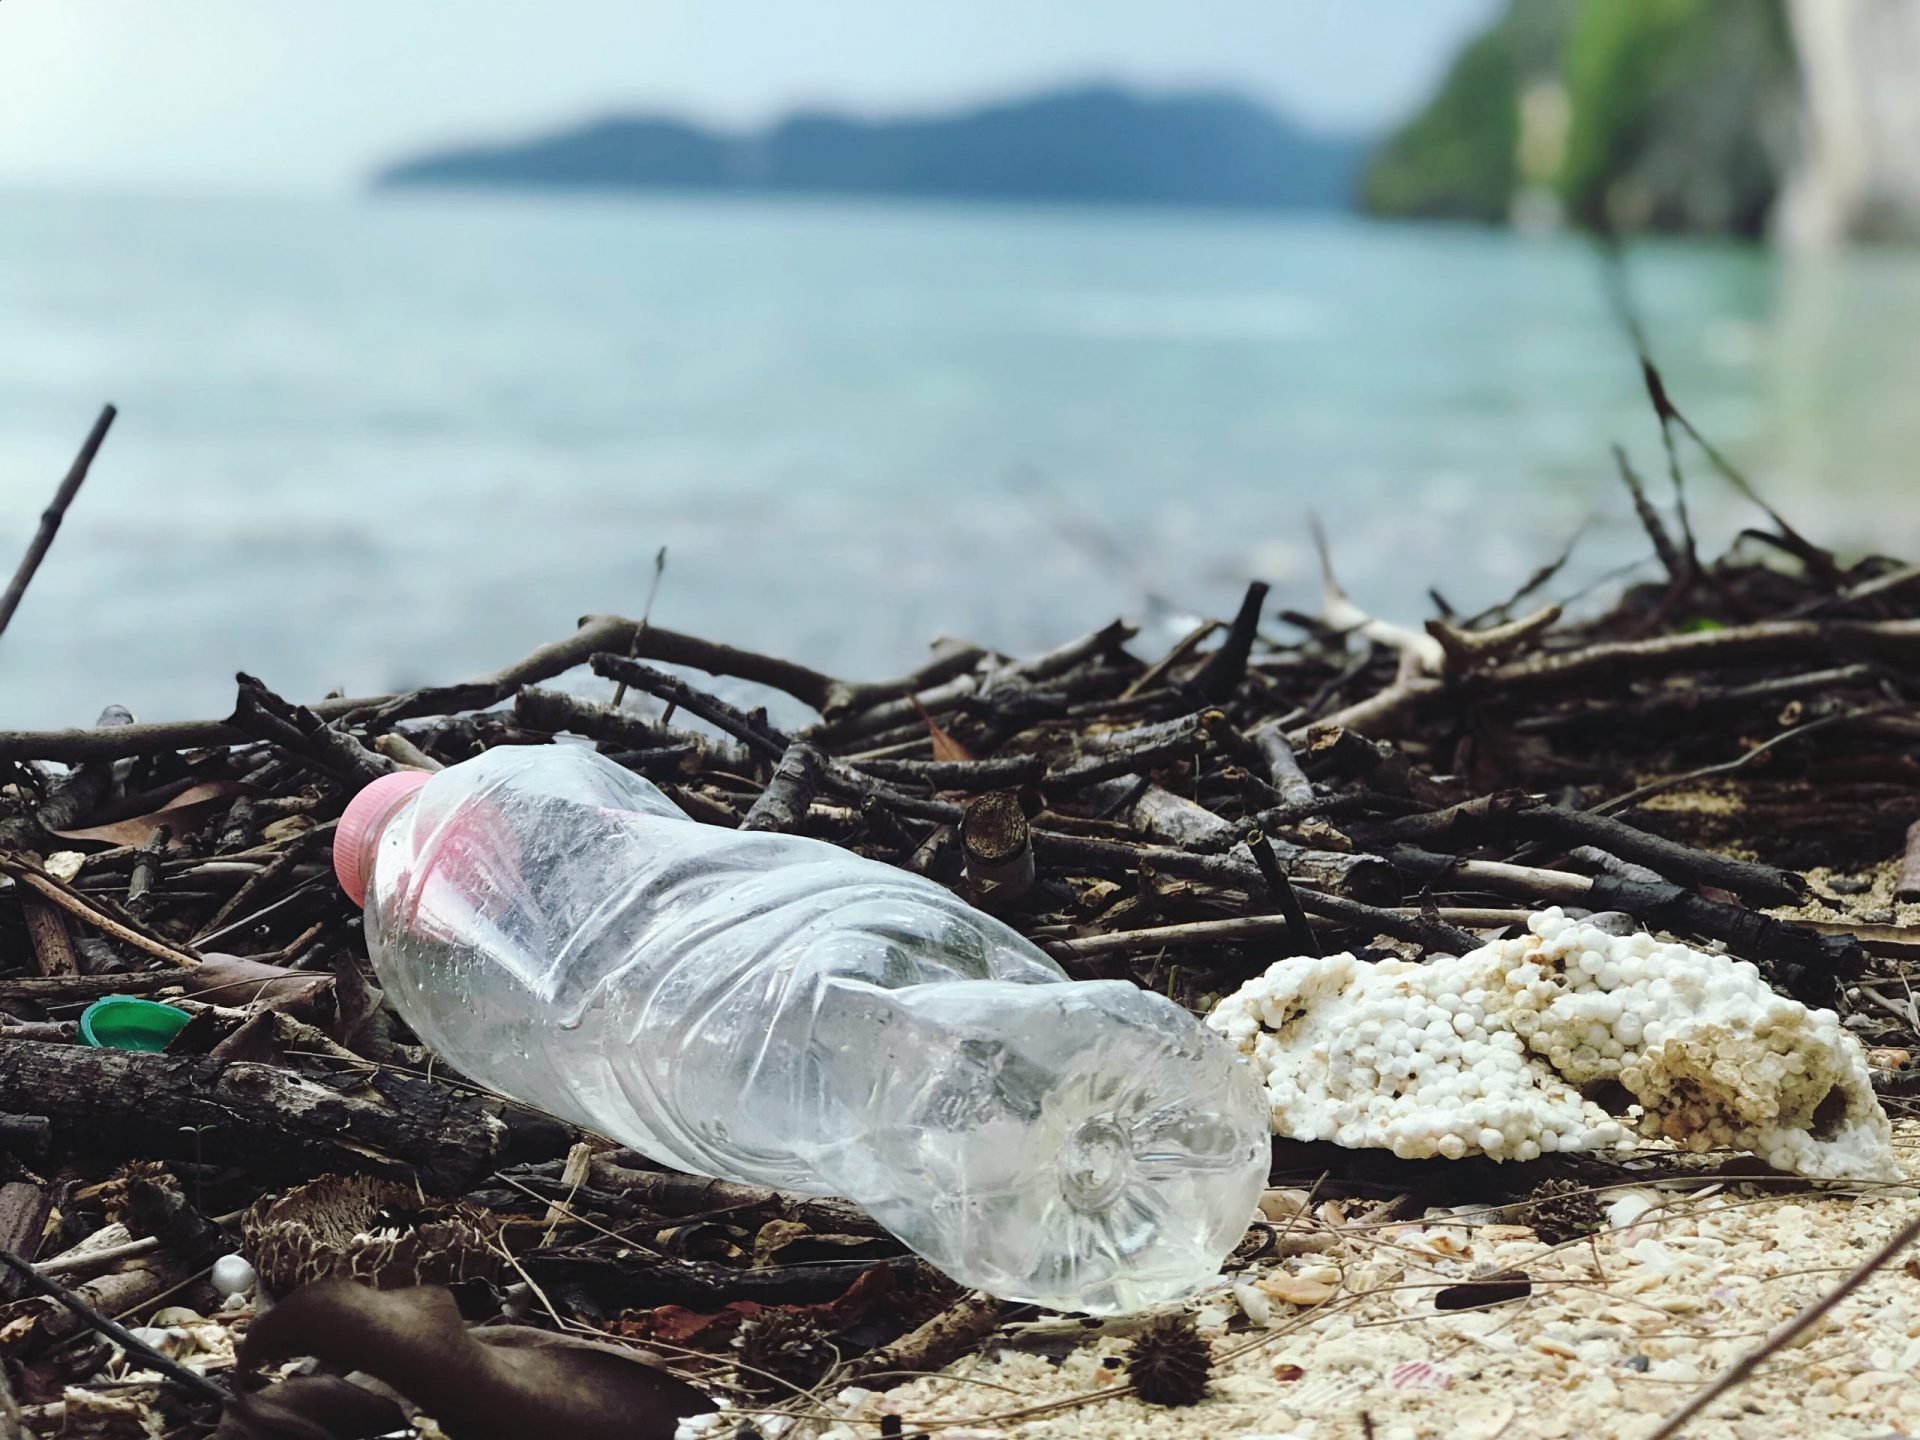 Single-use plastic bottles are destroying our oceans and beaches